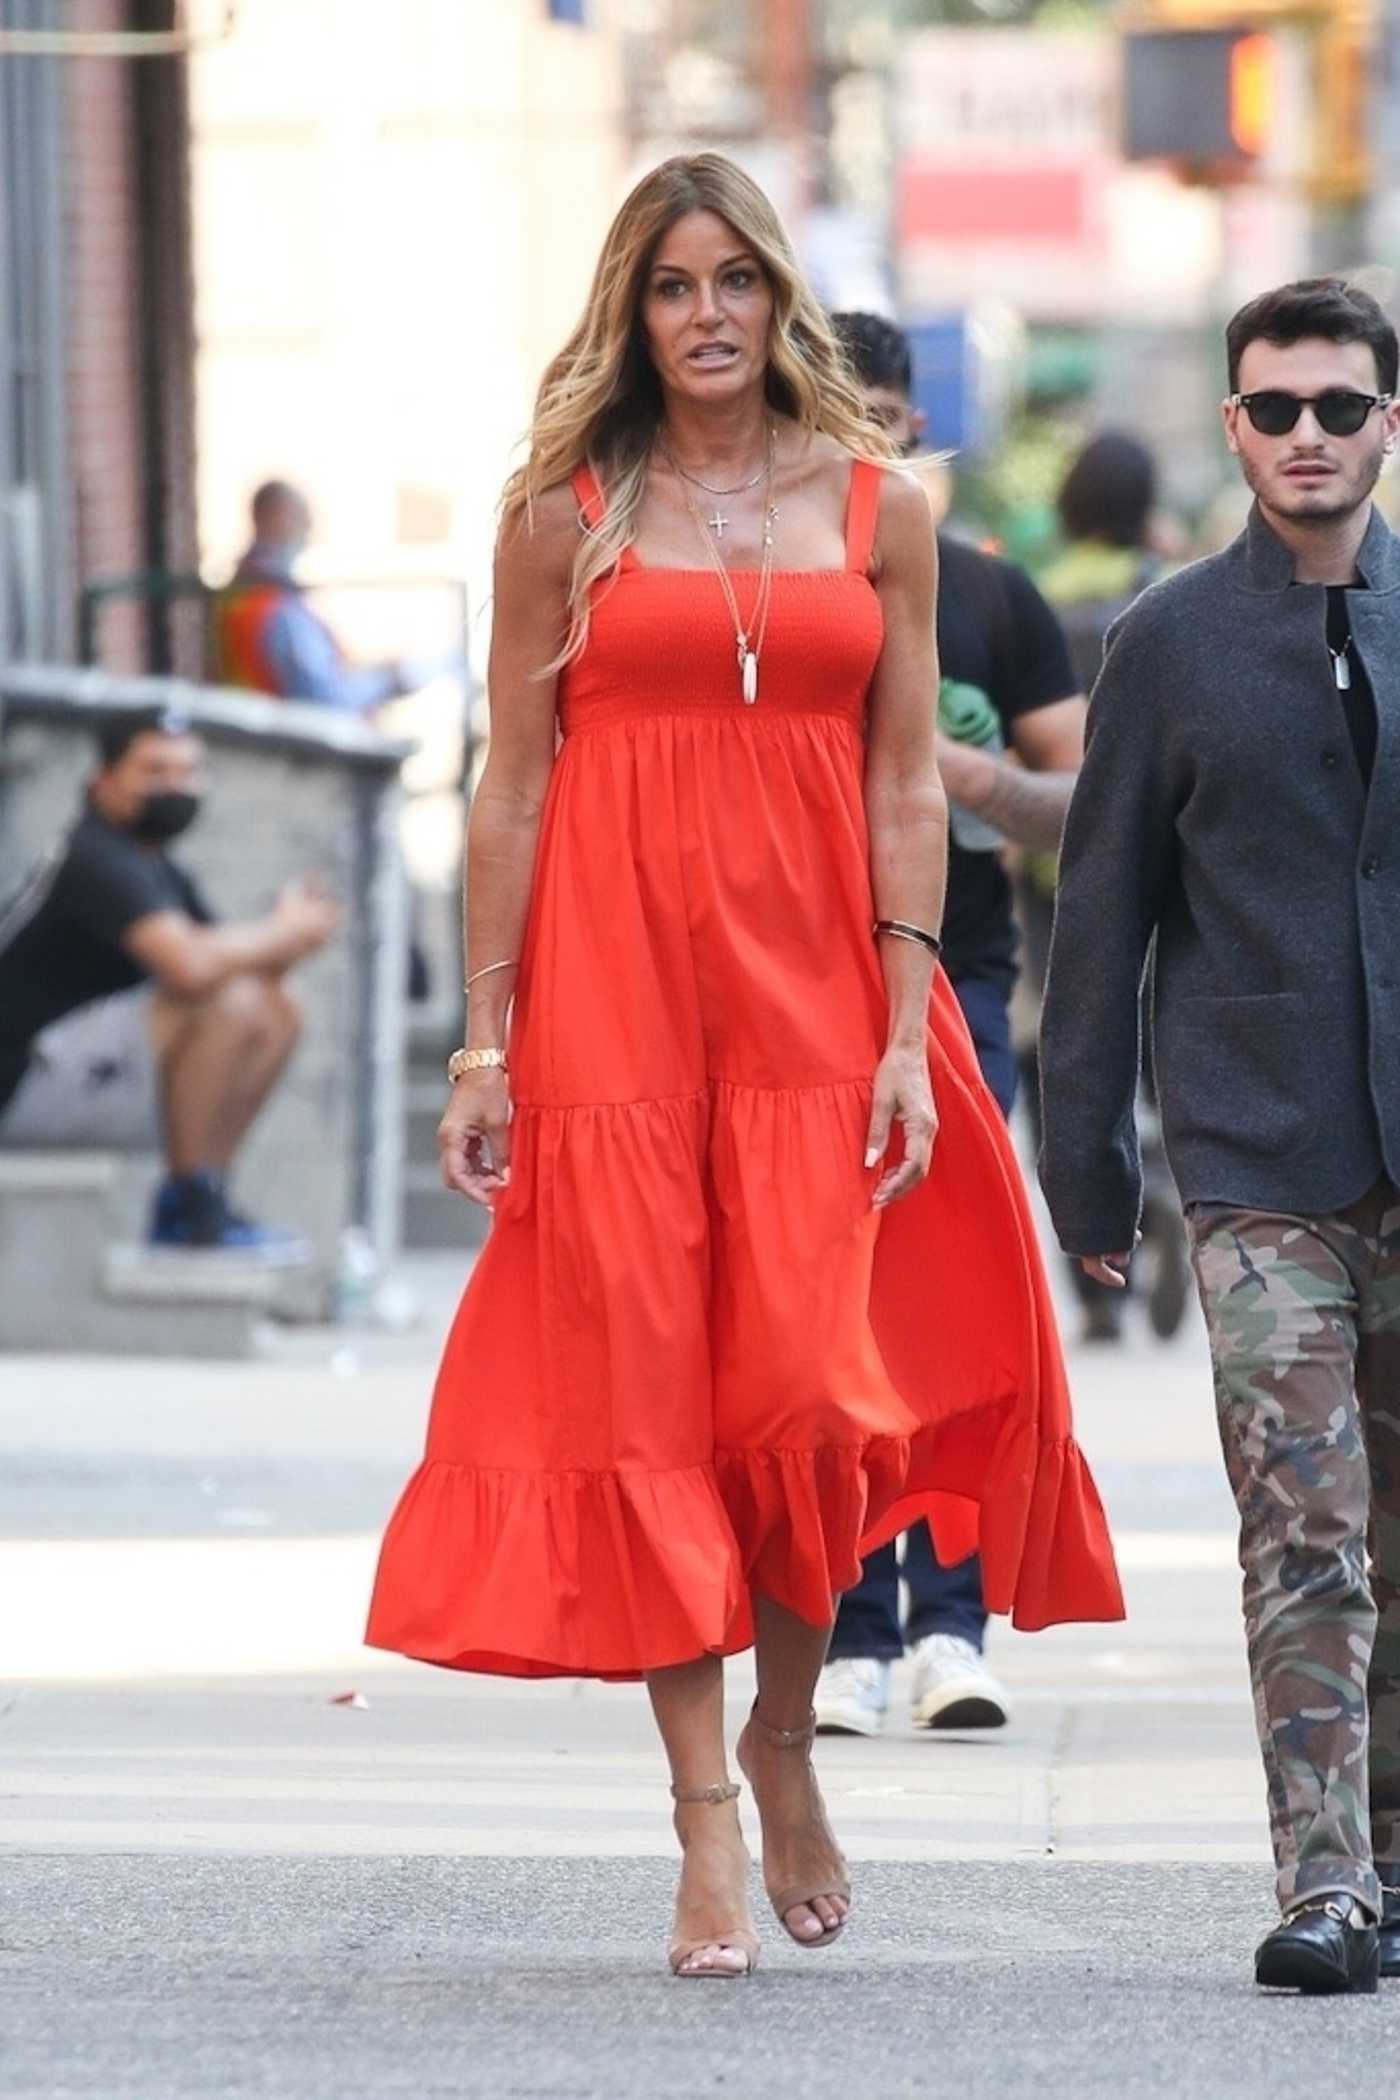 Kelly Bensimon in a Red Dress Was Seen Out in New York 05/20/2021